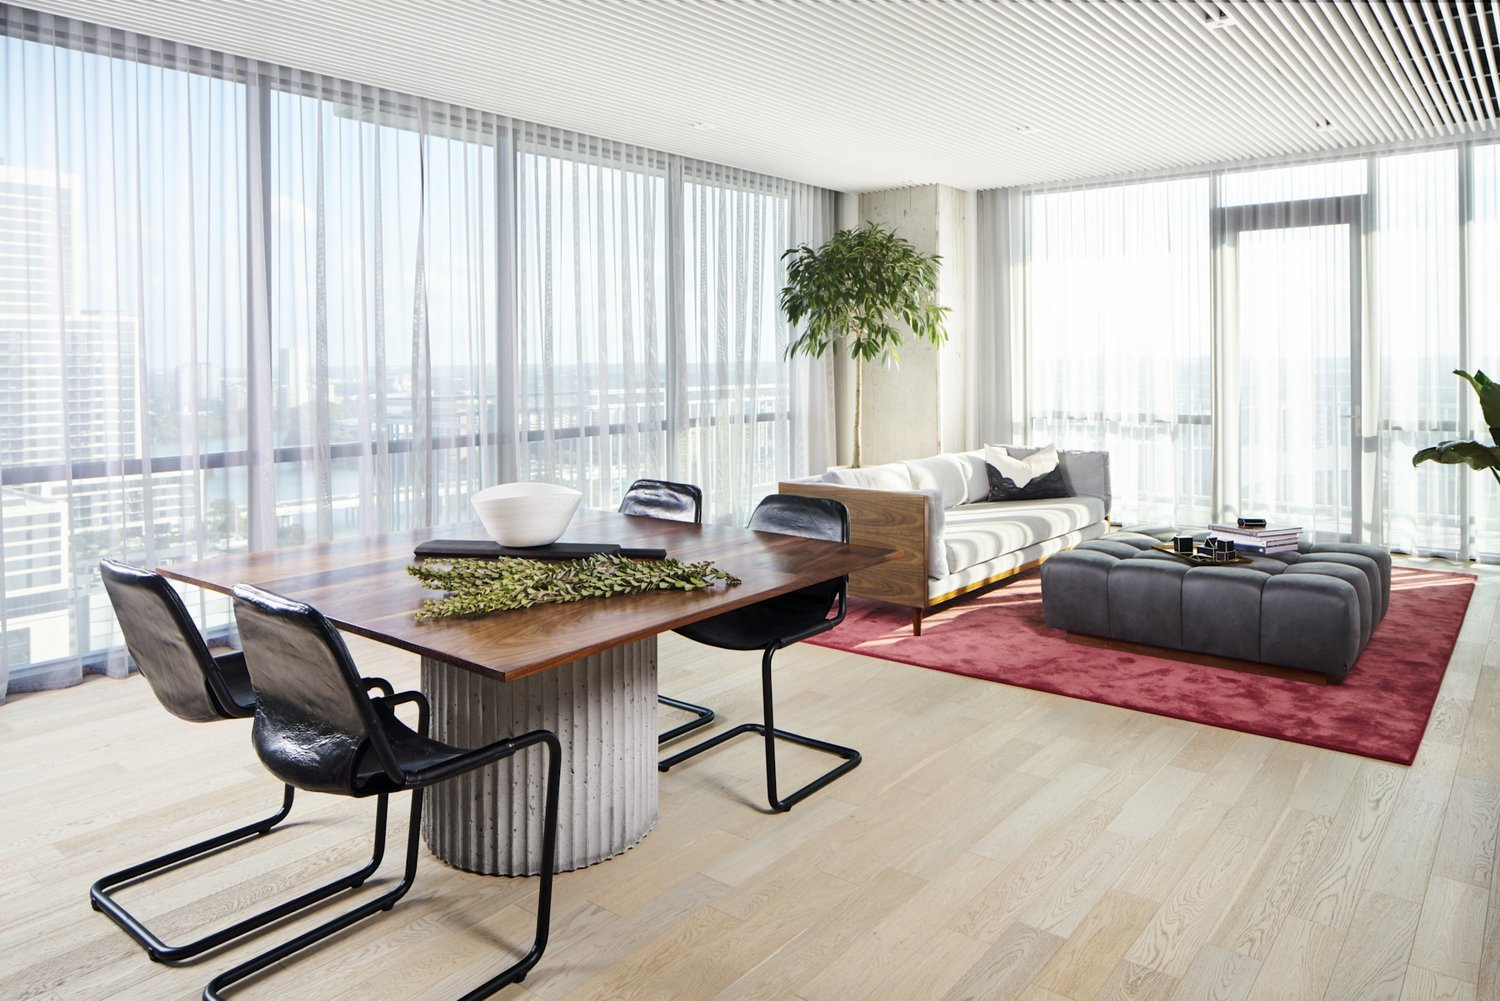 Modern living room with leather sling chair, walnut frame sofa, and wooden tabletop with a concrete base.